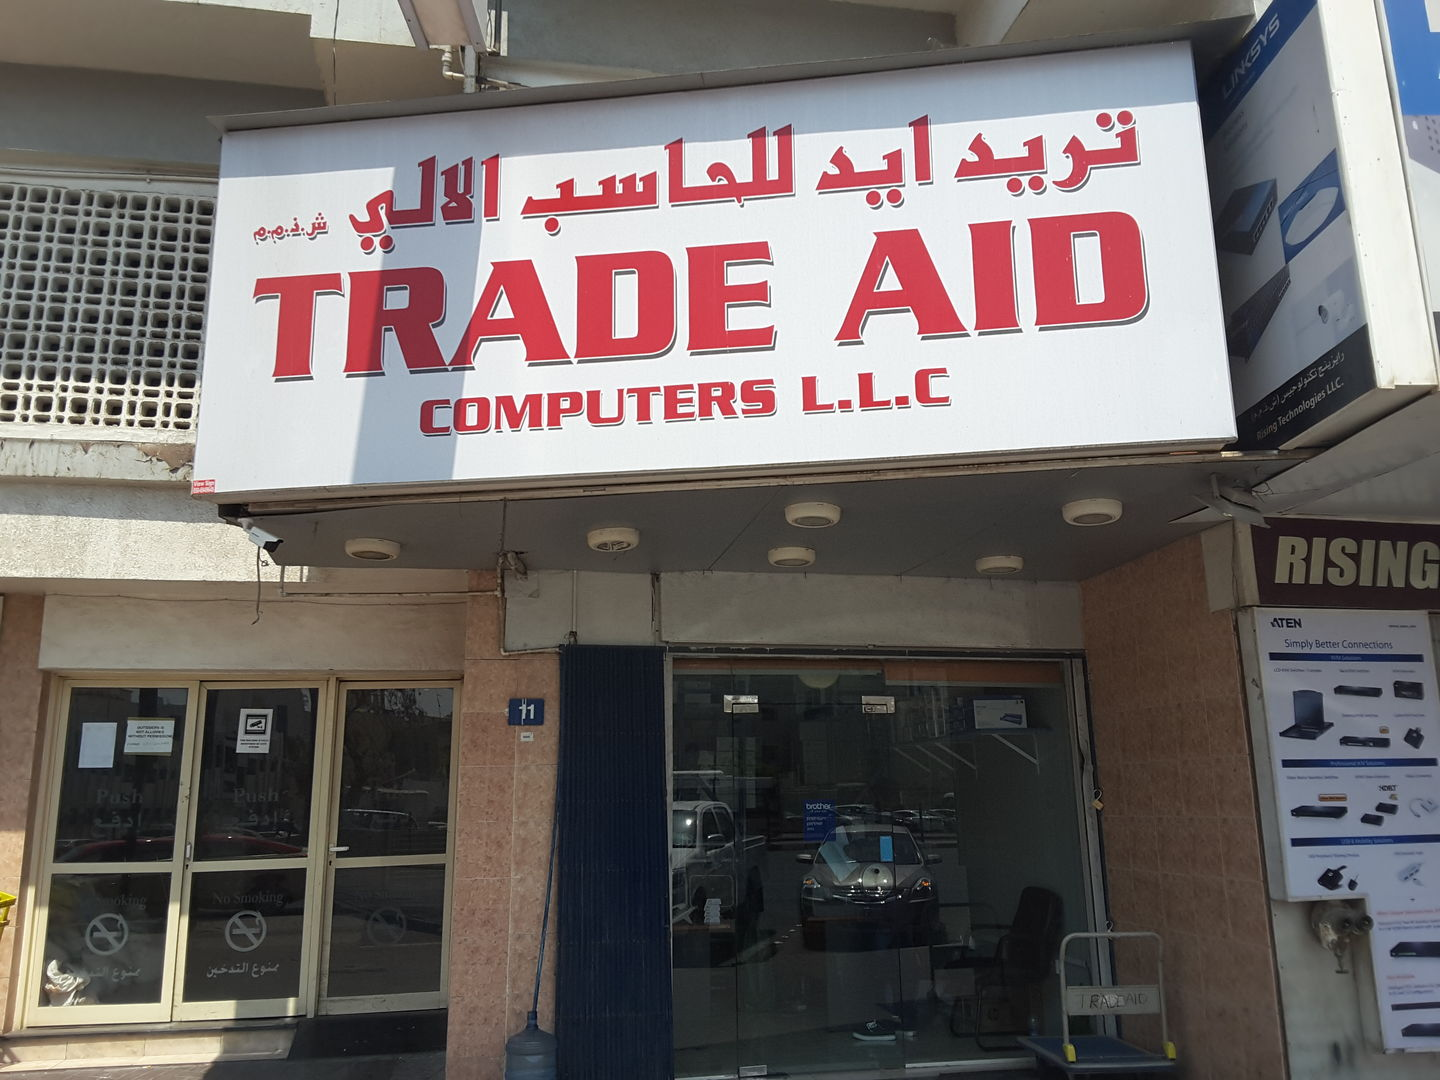 HiDubai-business-trade-aid-computers-b2b-services-distributors-wholesalers-al-fahidi-al-souq-al-kabeer-dubai-2